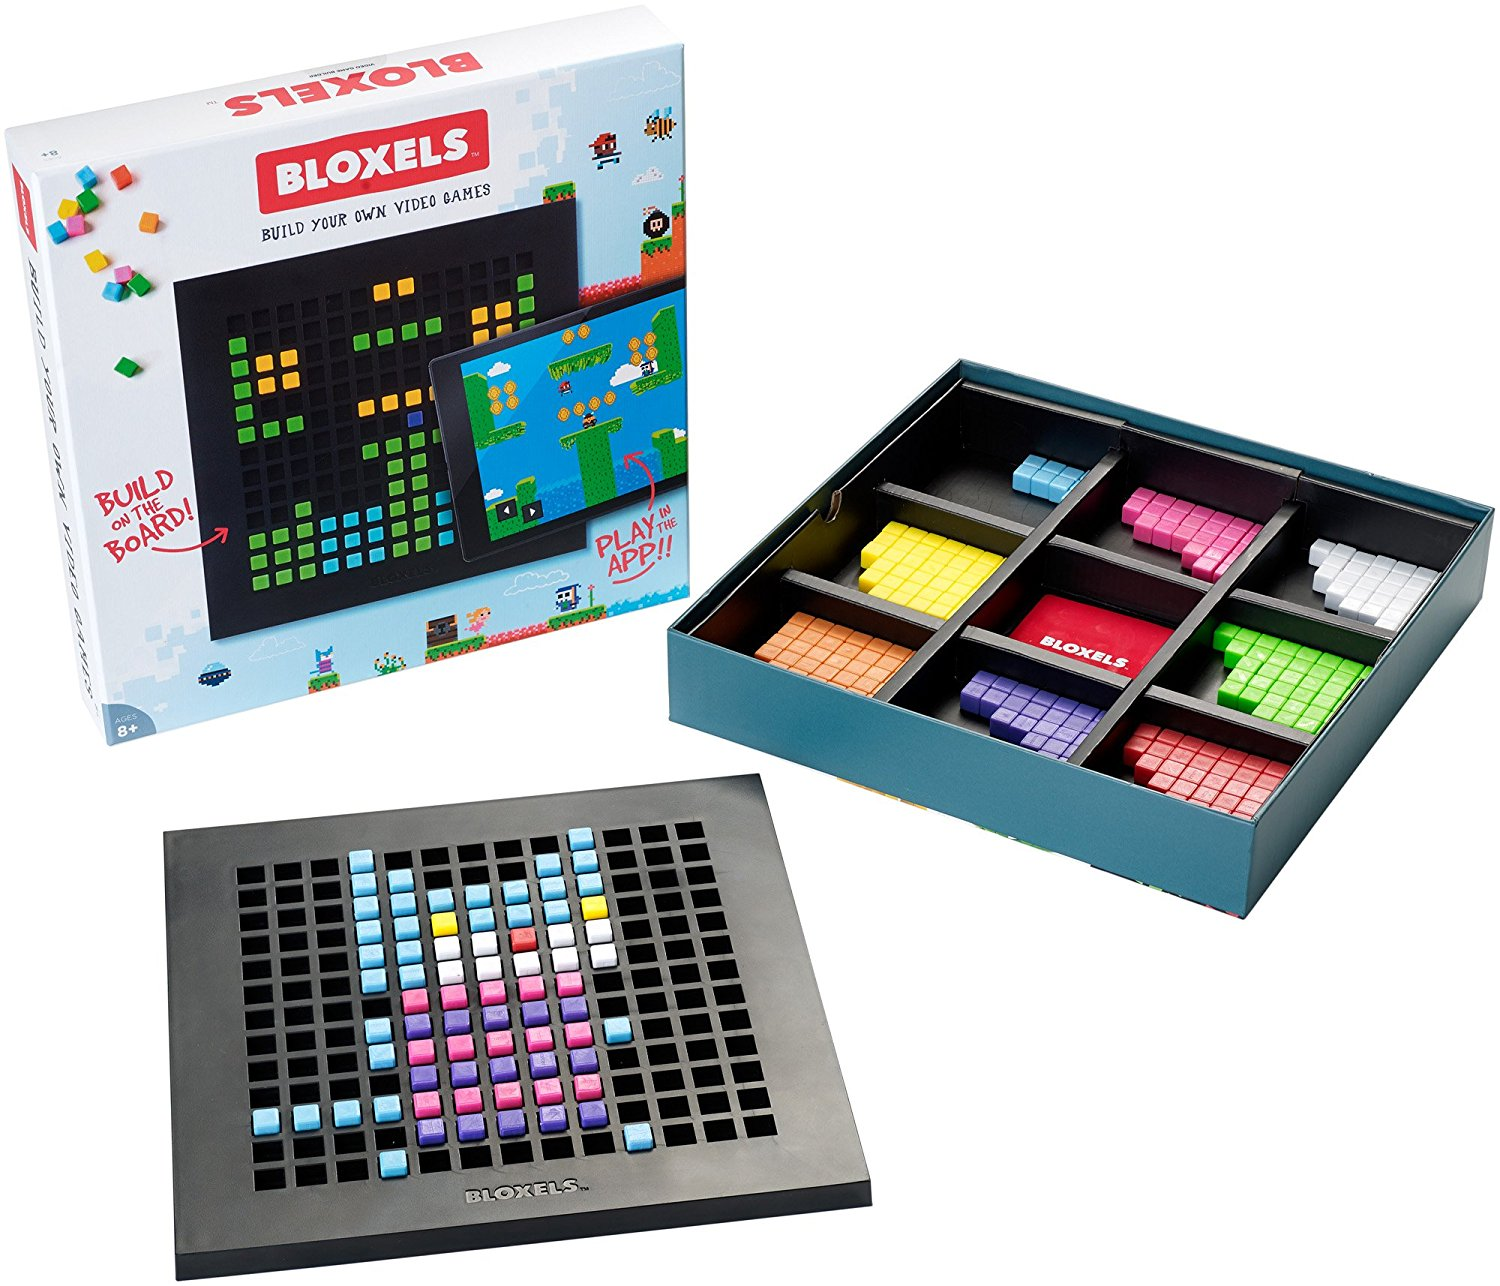 Bloxels: Build Your Own Video Game, Fast shipping,Brand Mattel by